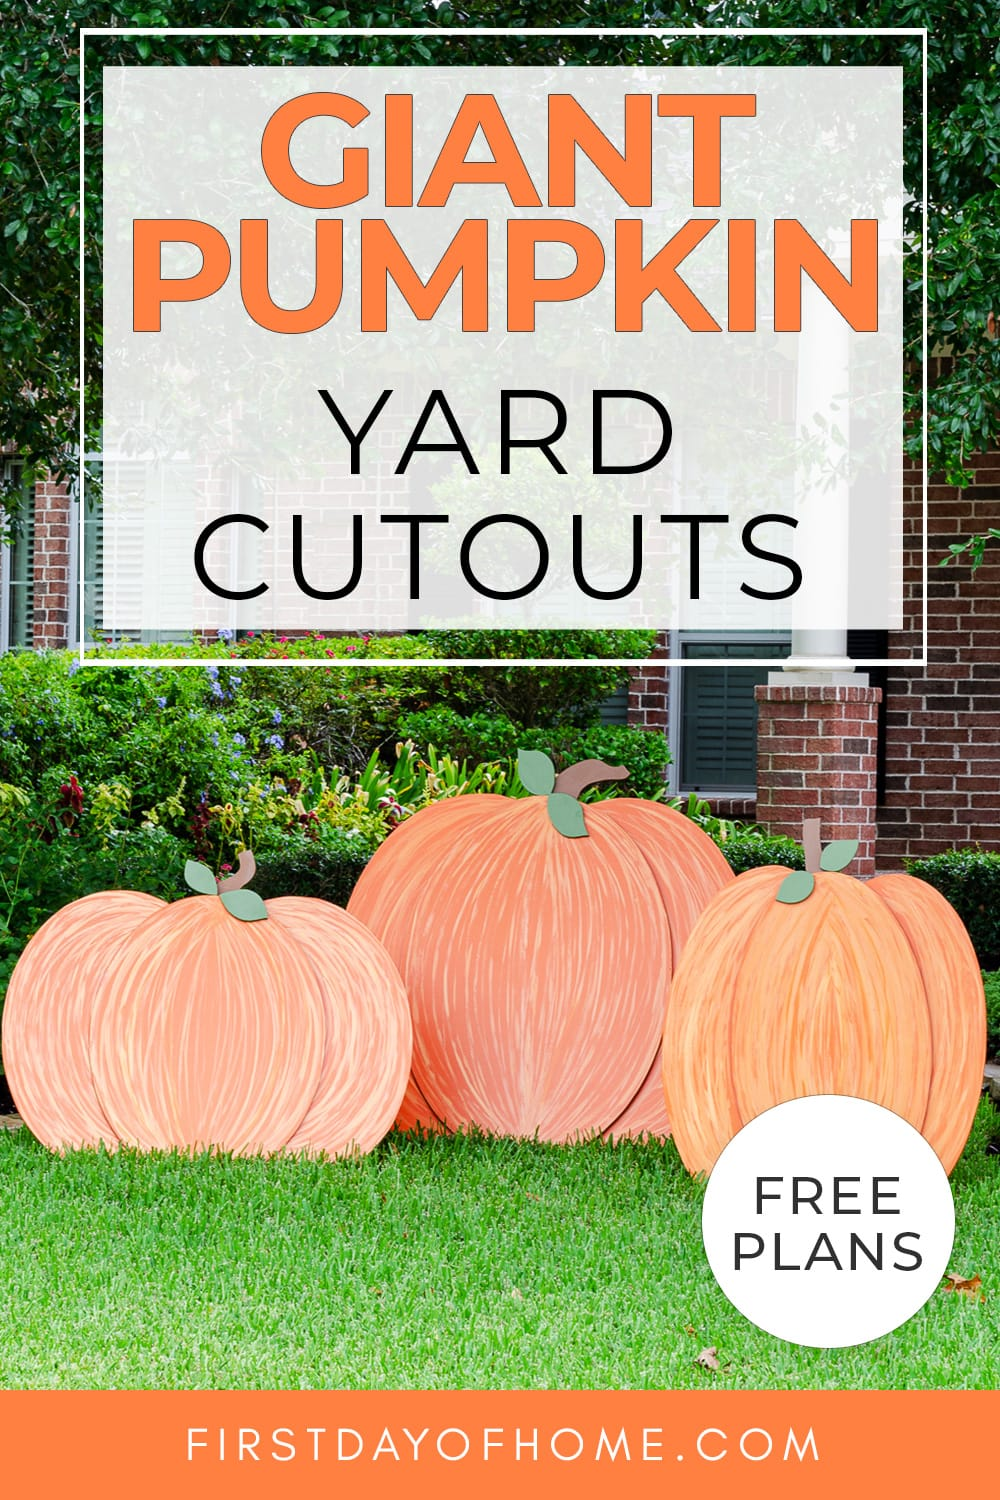 """Giant wooden pumpkins sitting on front lawn with text overlay reading """"Giant Pumpkin Yard Cutouts"""""""